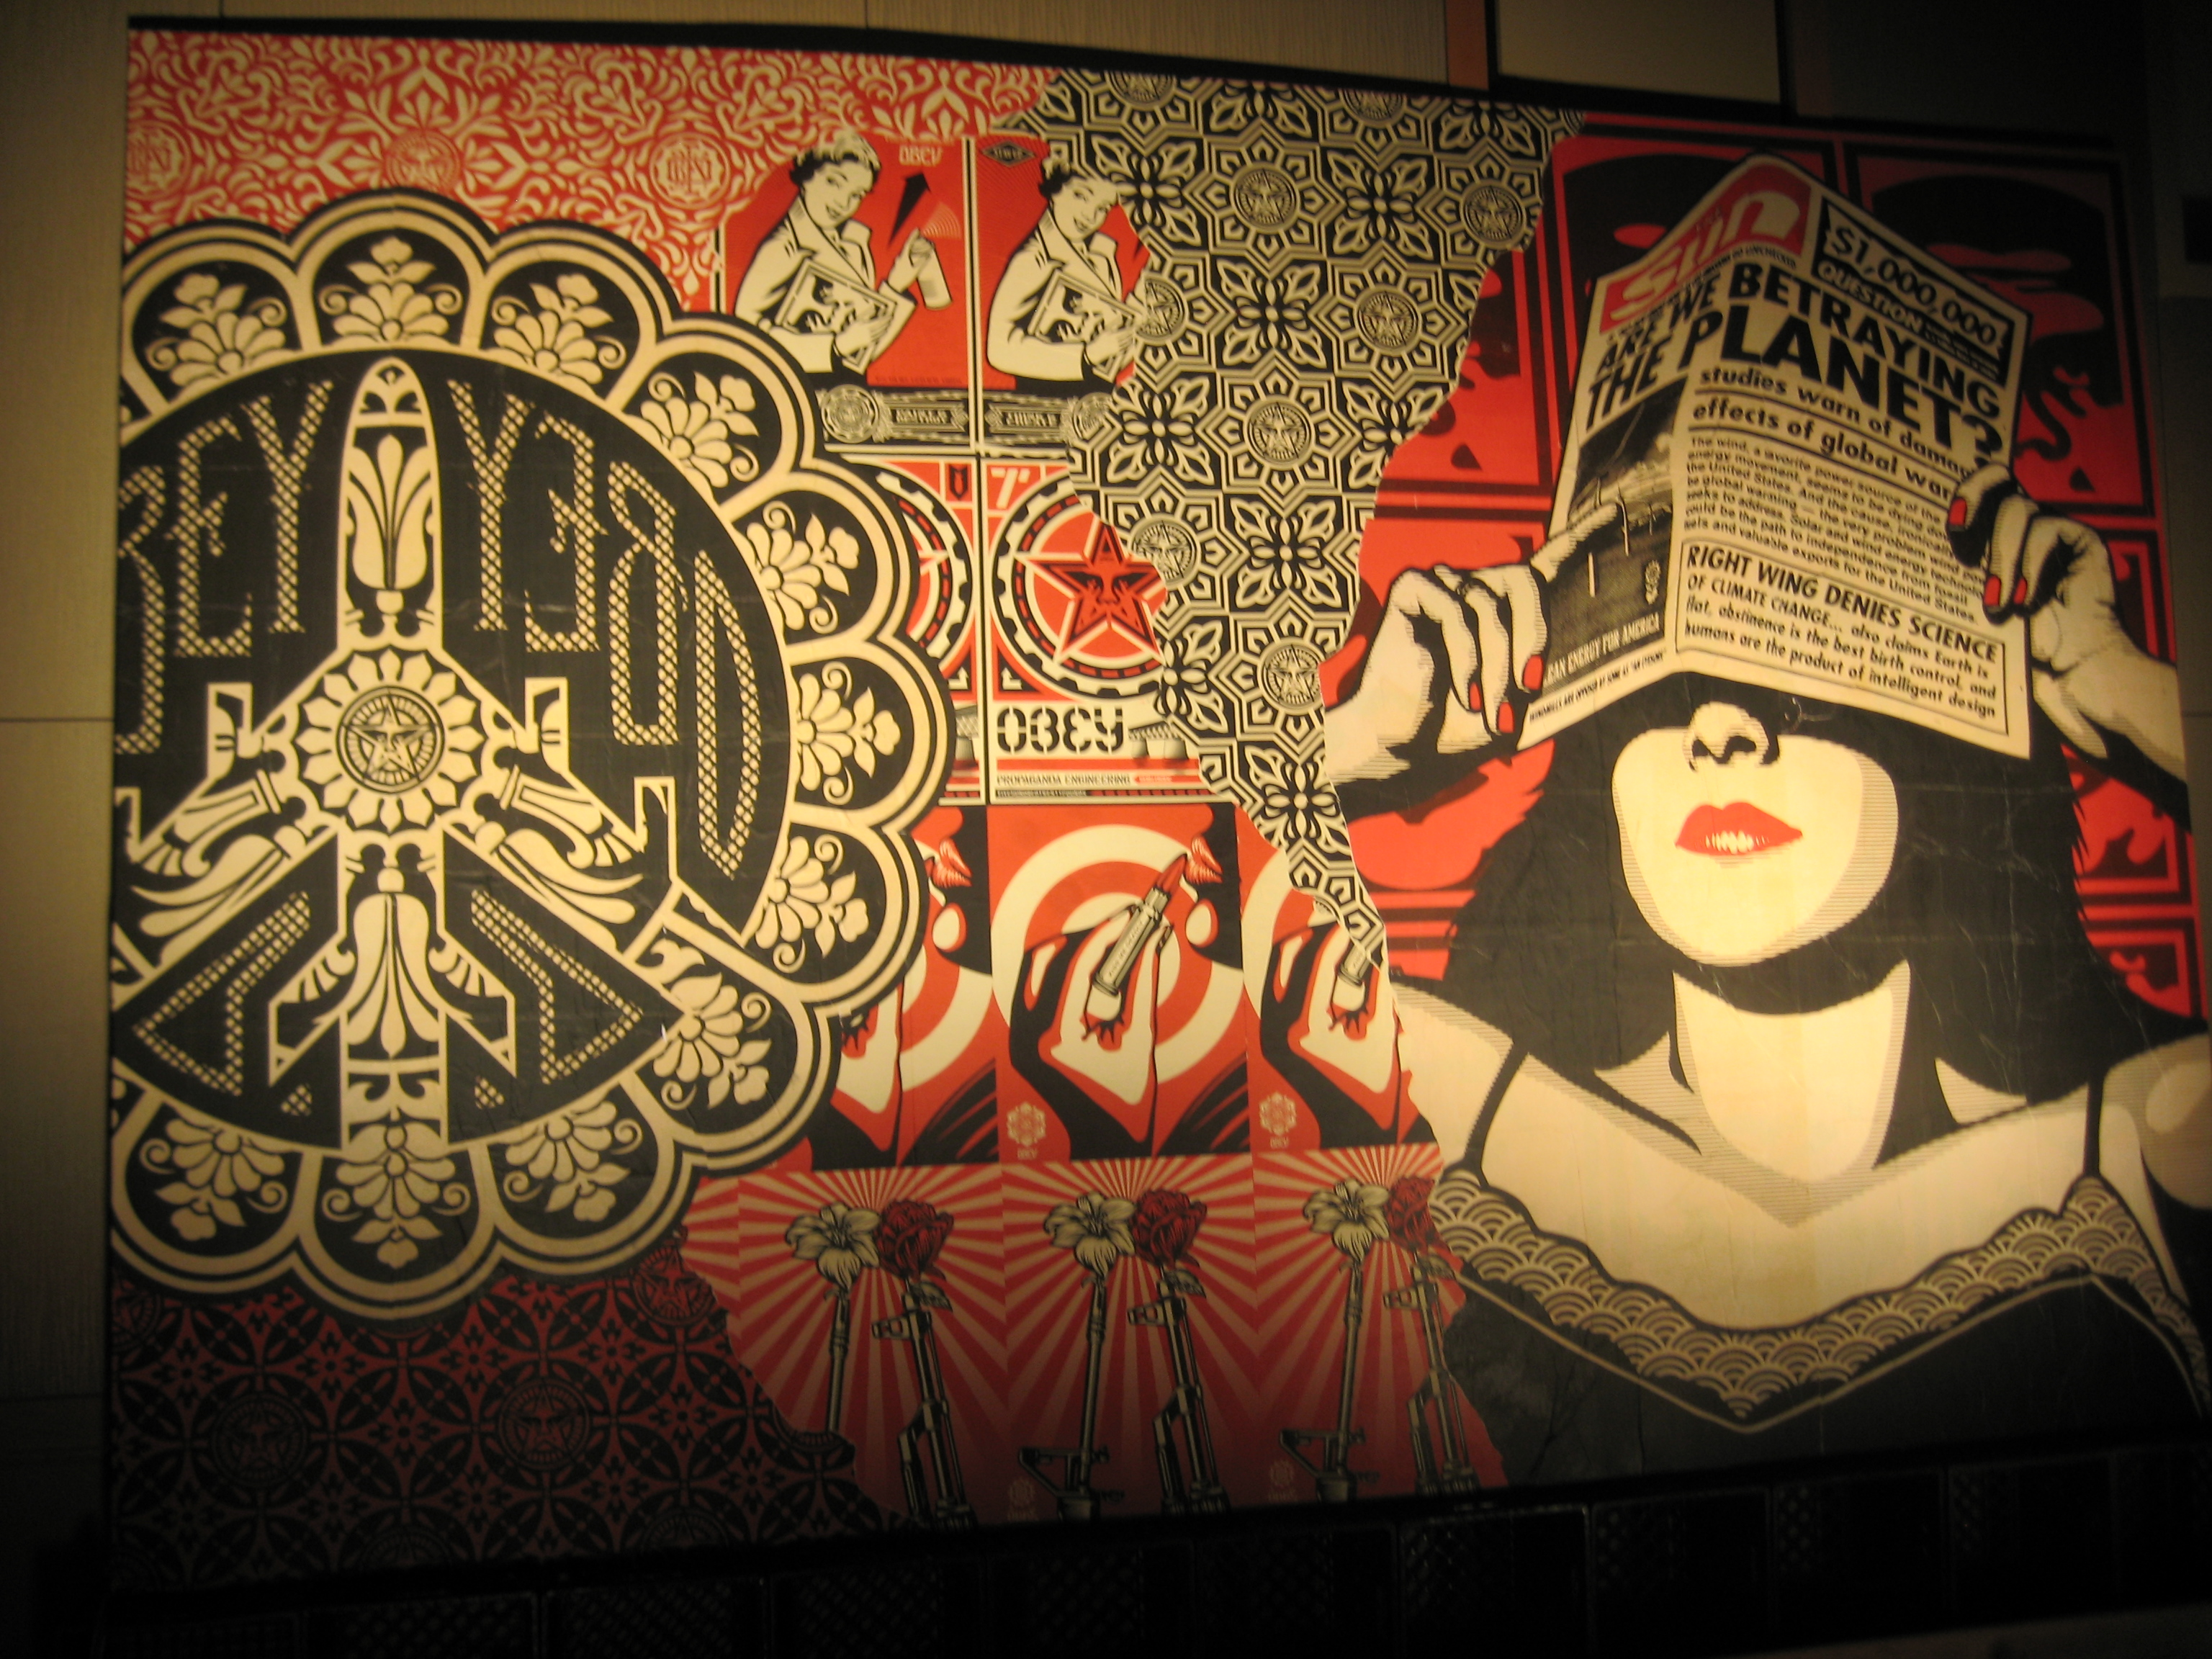 Obey Art Wallpaper Obey art wallp 3072x2304